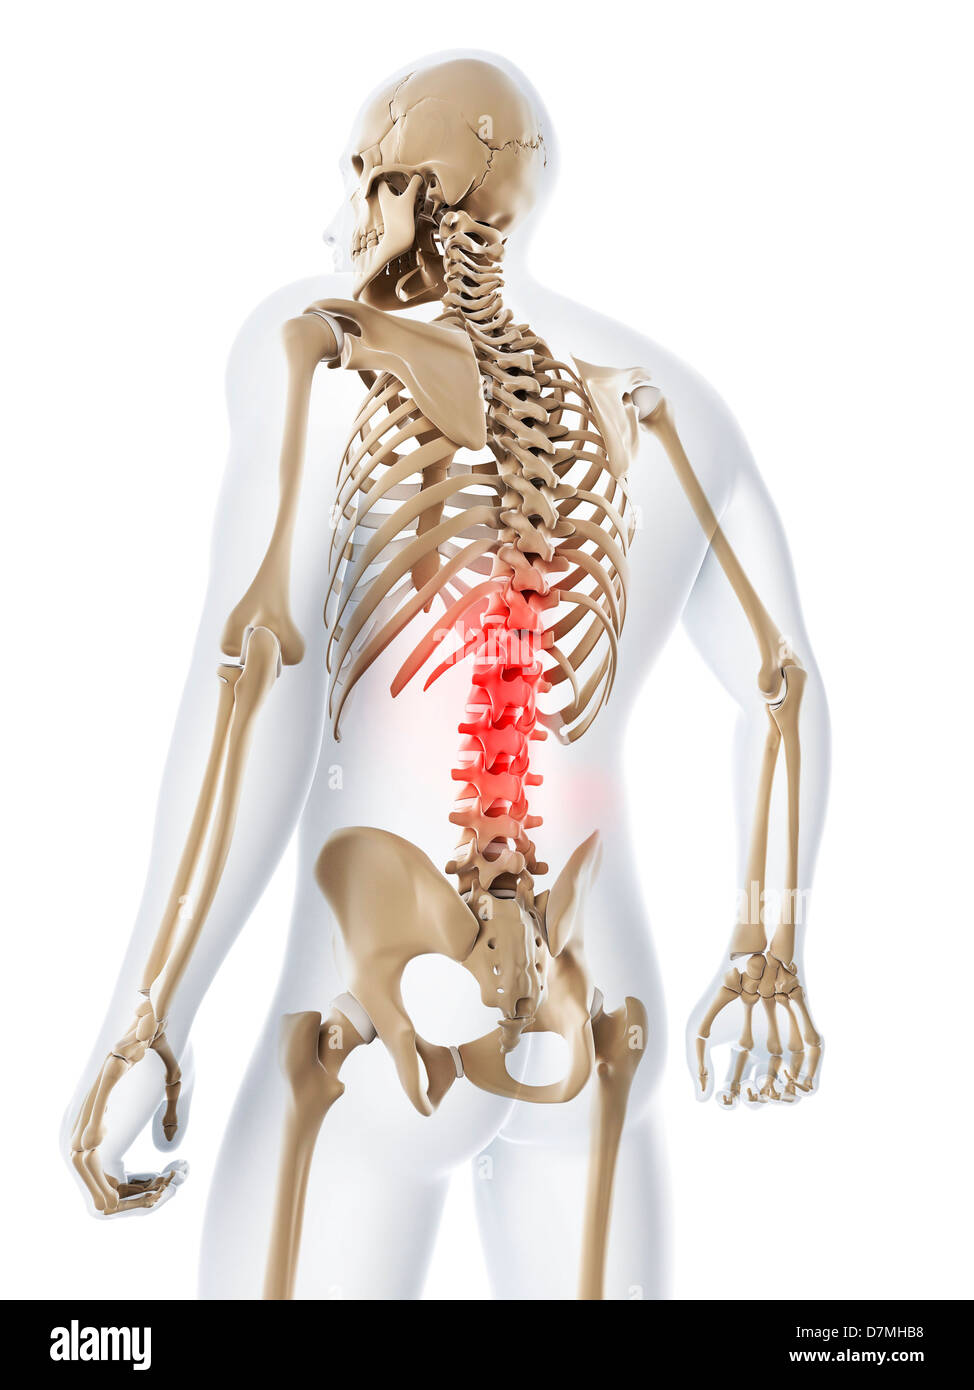 hight resolution of lower back pain conceptual artwork